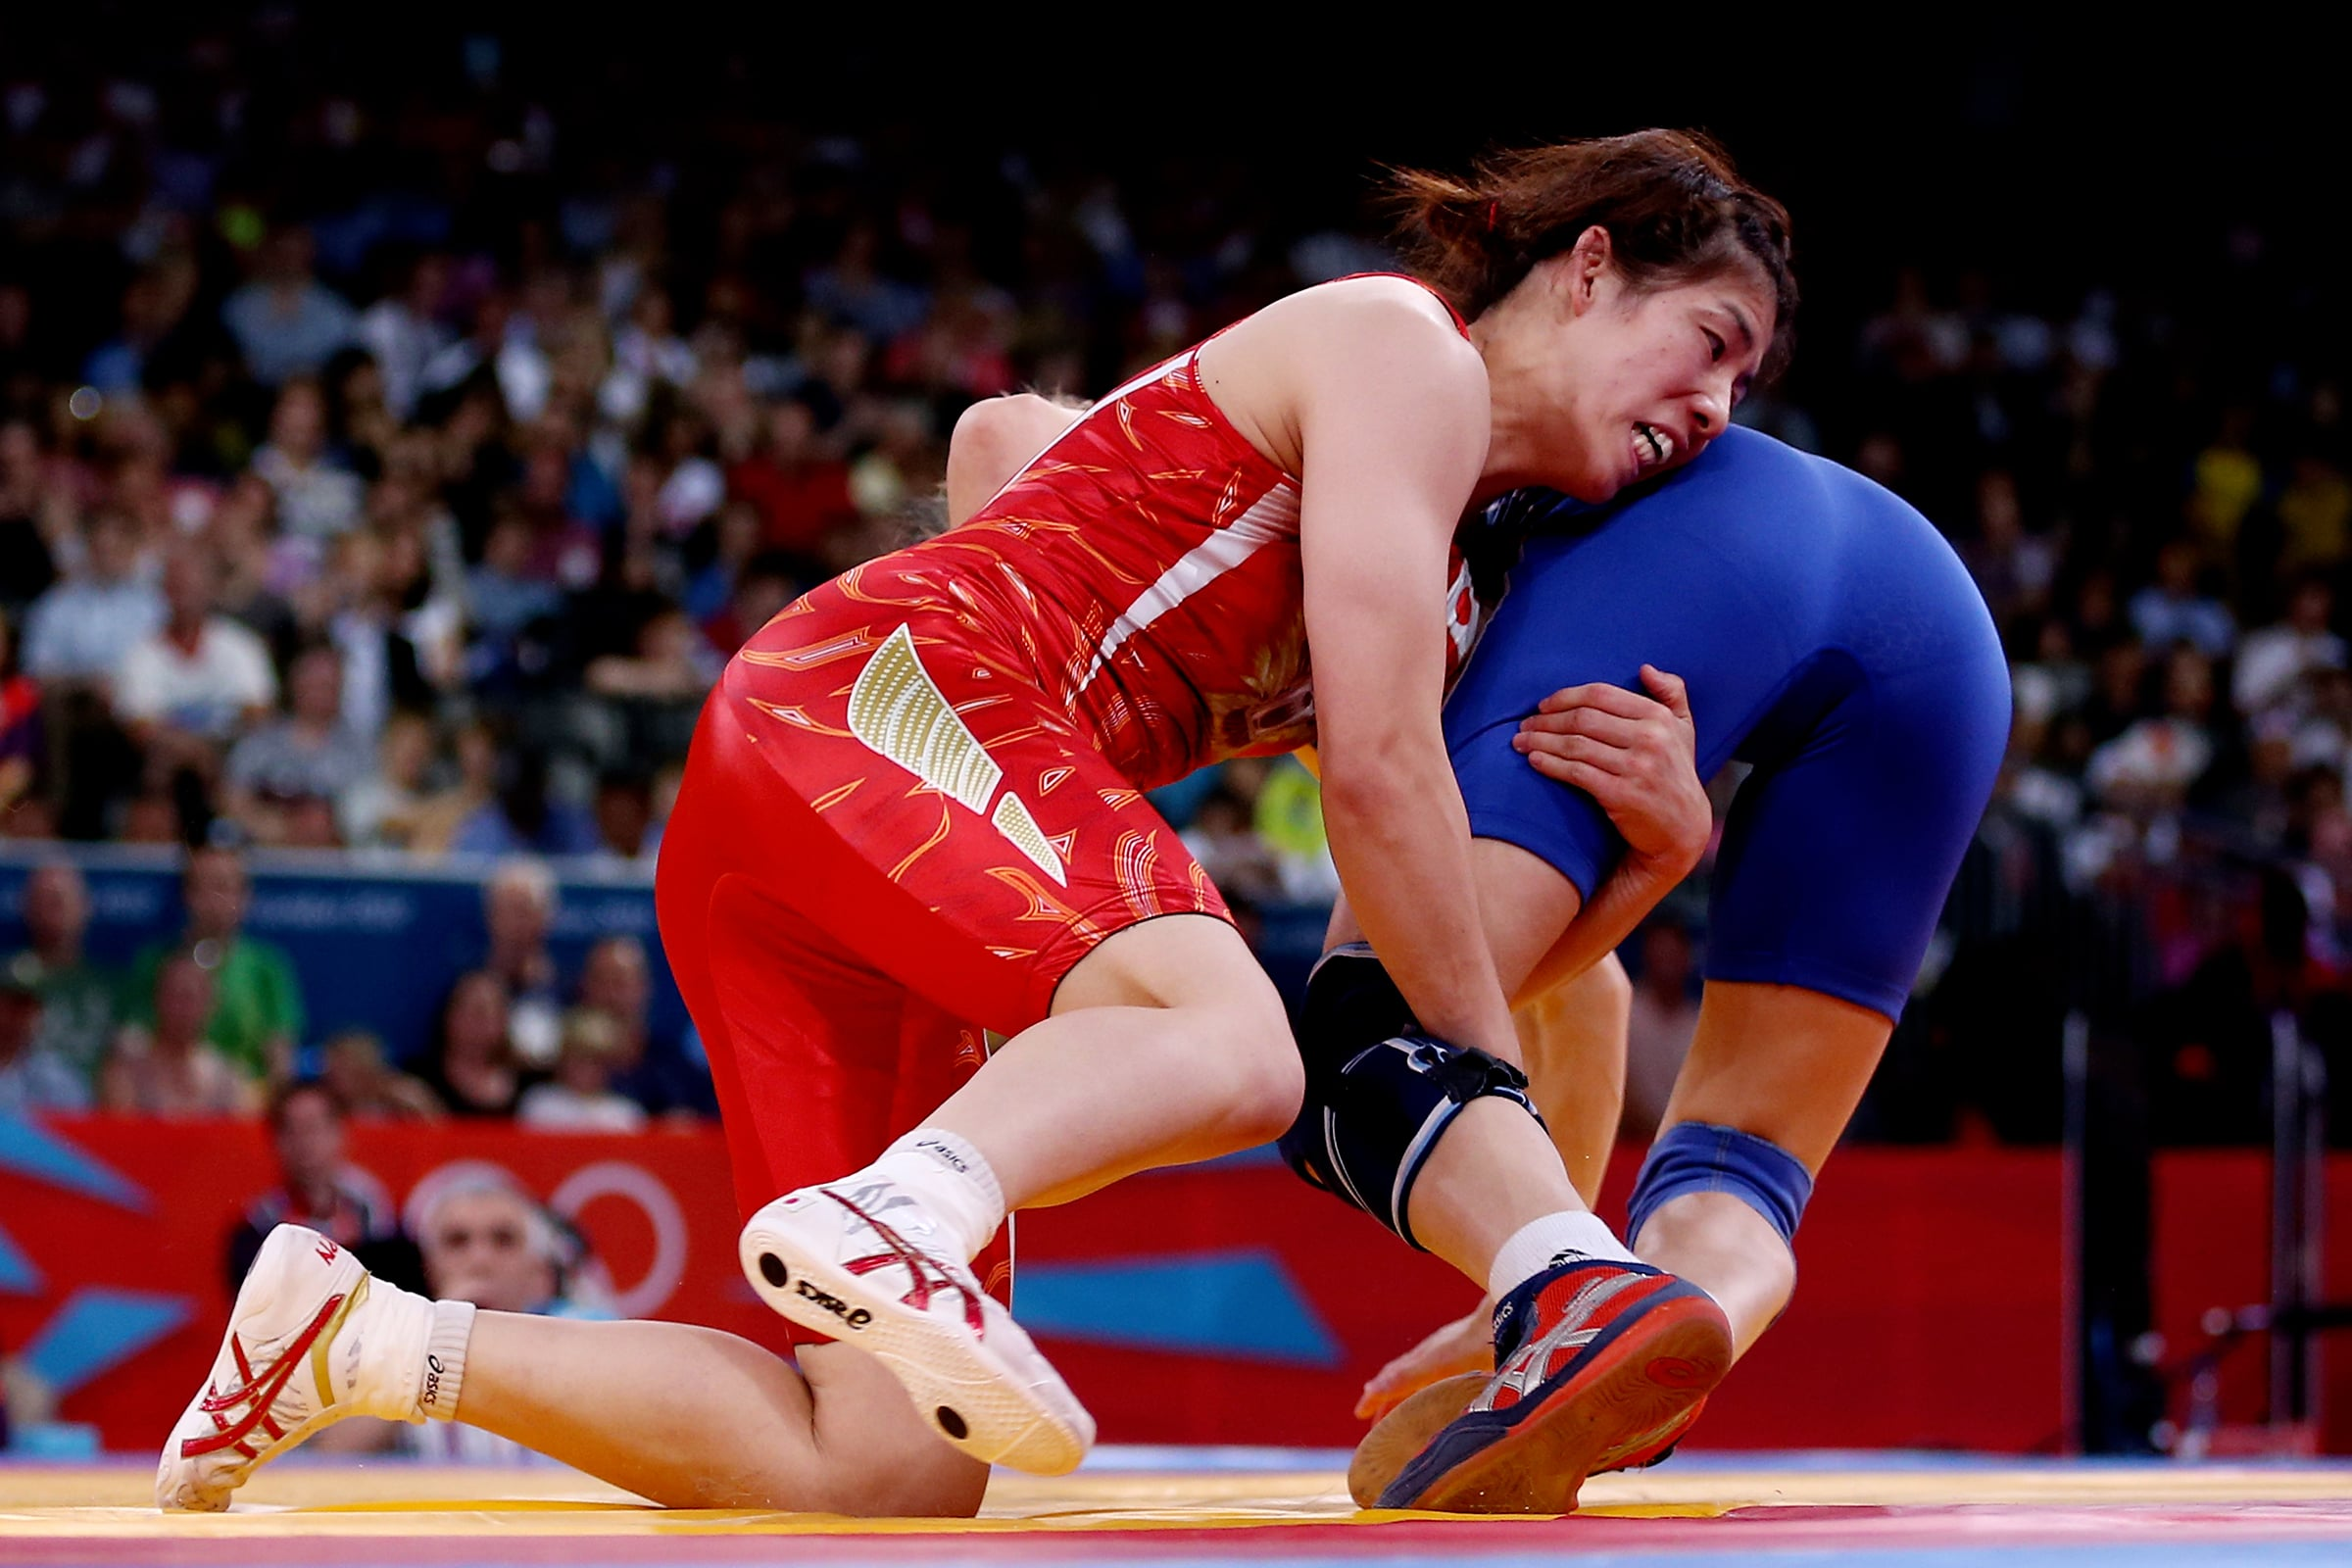 Wrestling Freestyle - 55kg Women